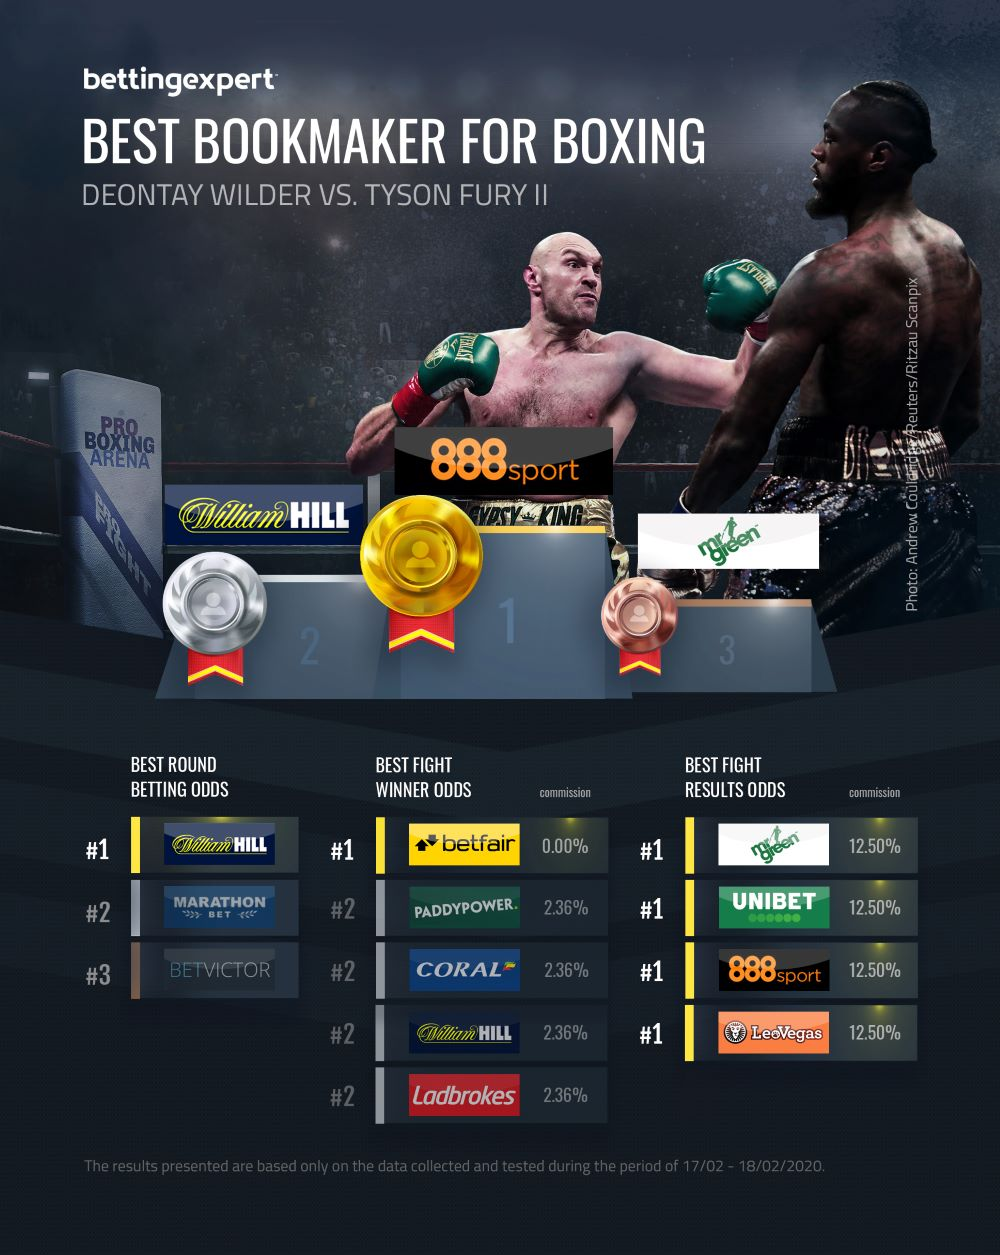 Boxing betting ladbrokes results aiding and abetting charge in nc how old